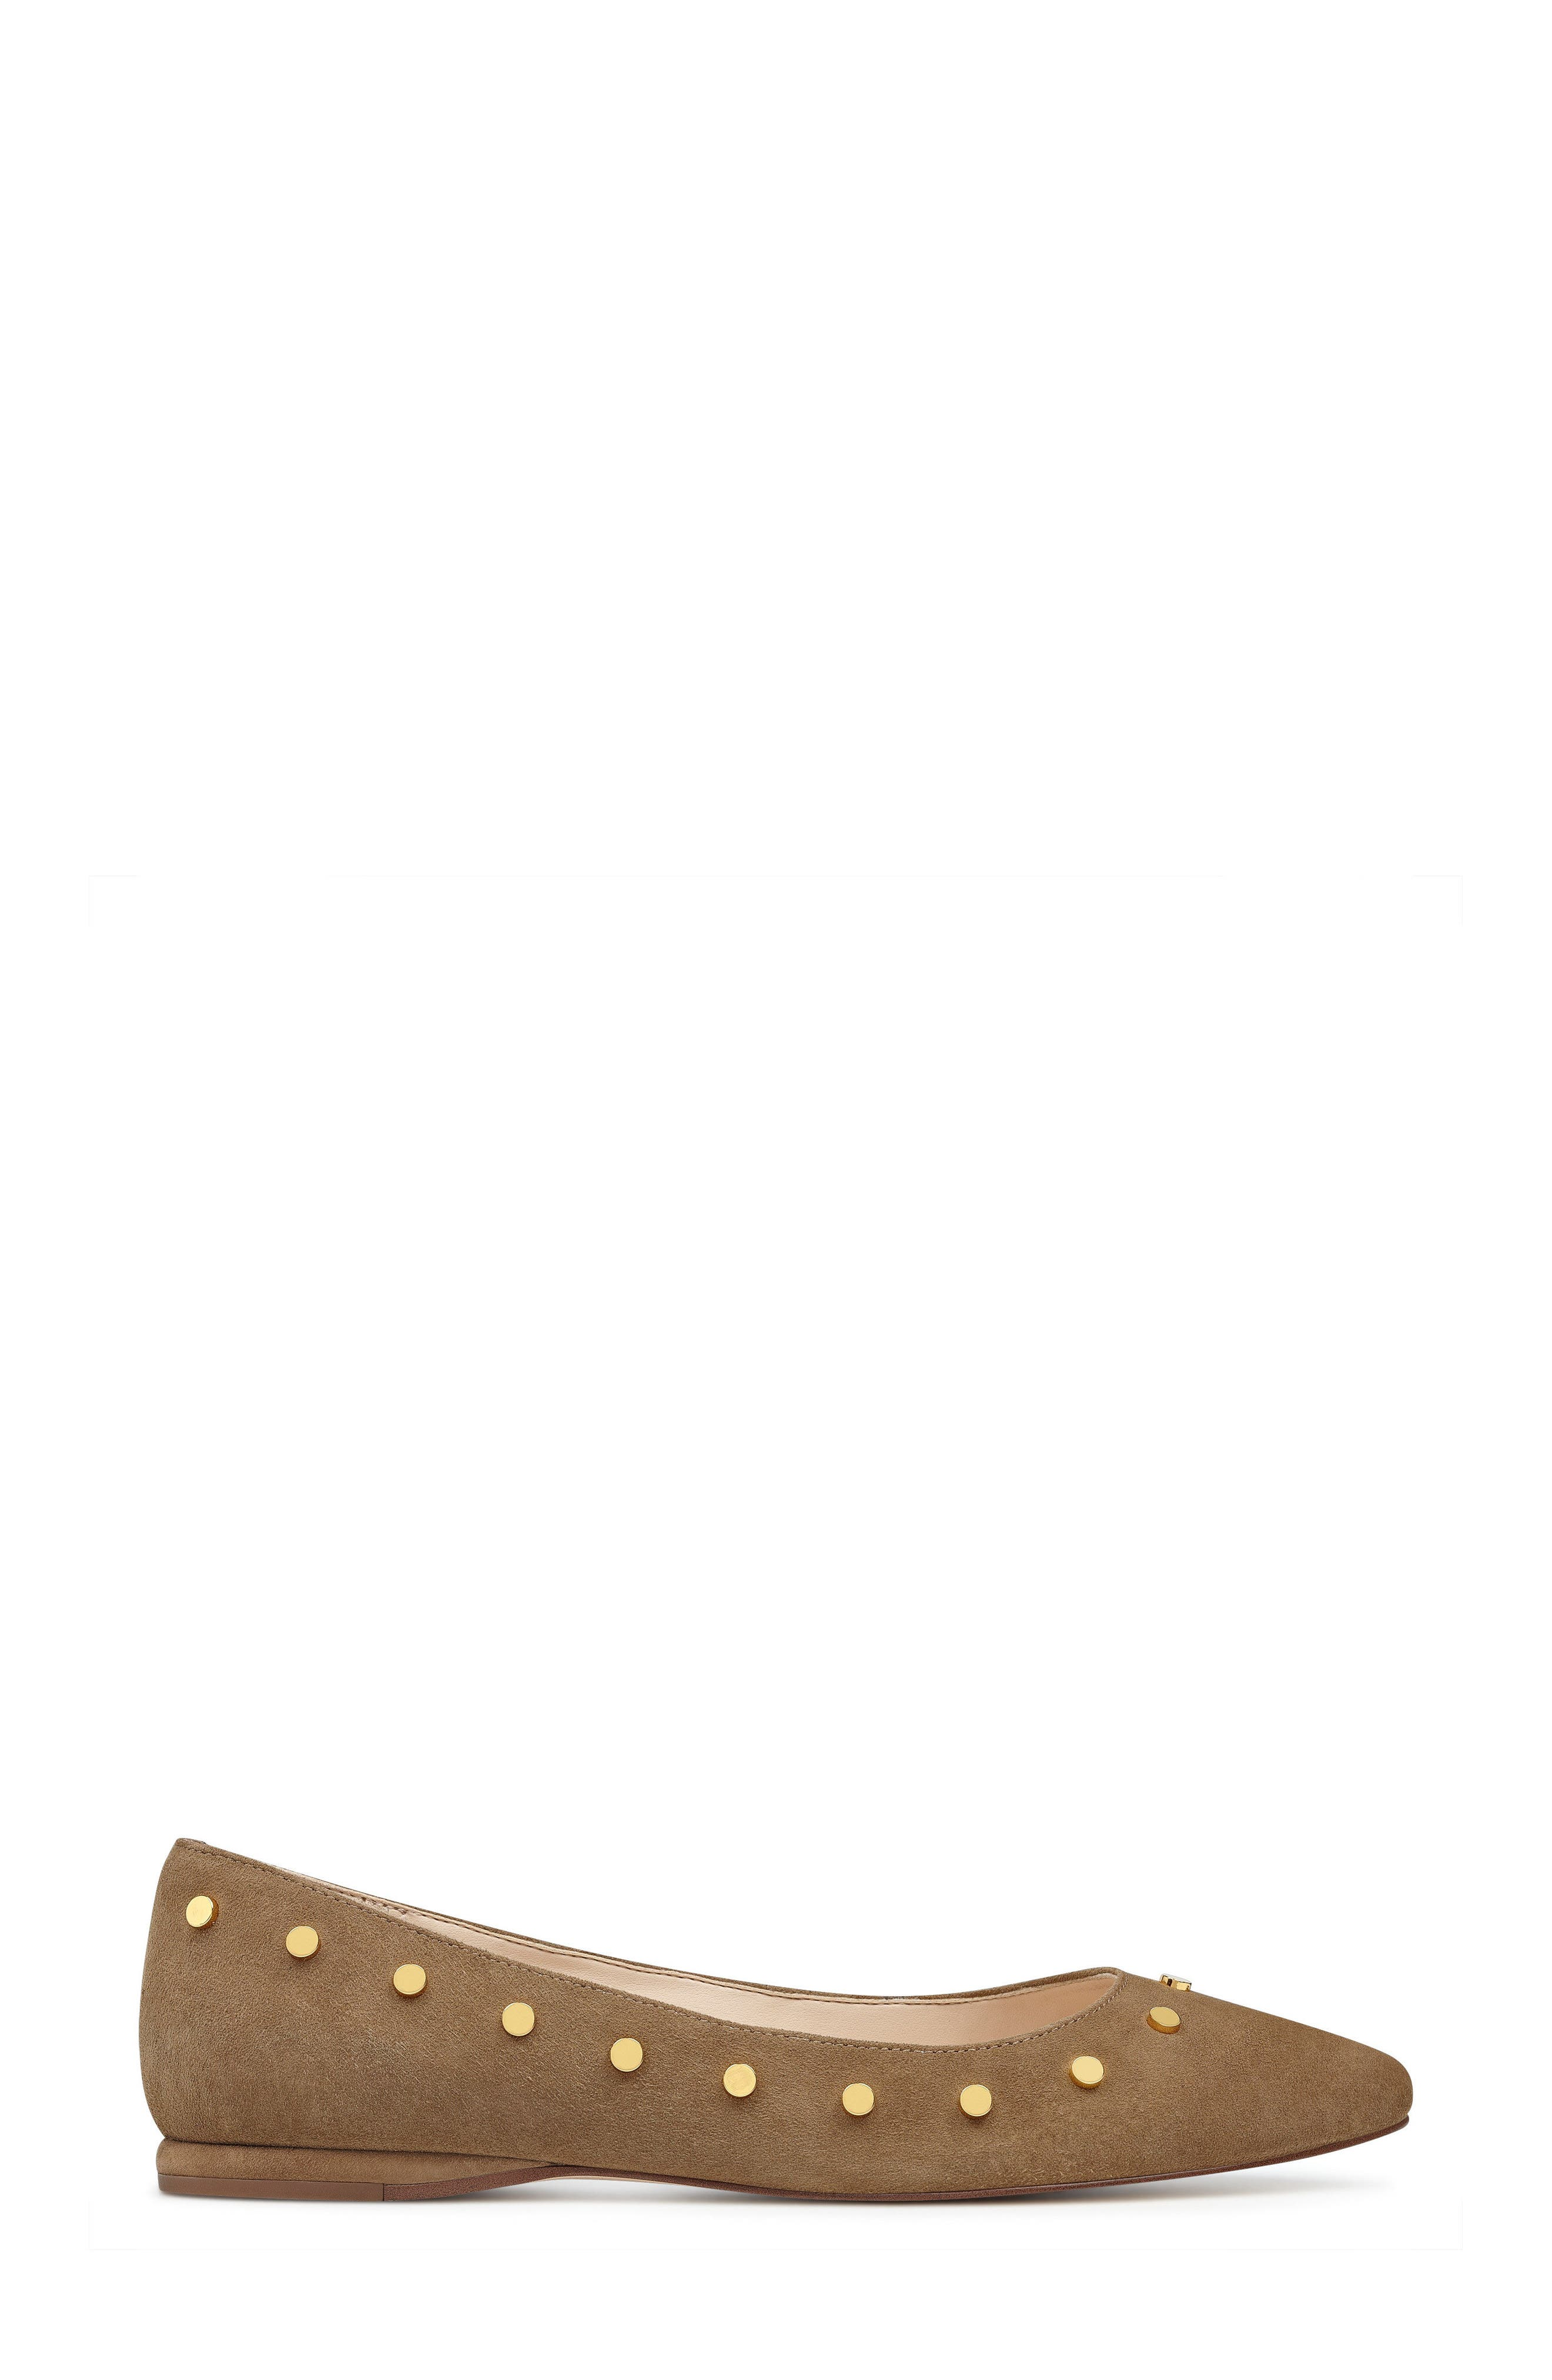 Sigismonda Studded Flat,                             Alternate thumbnail 3, color,                             Green Suede